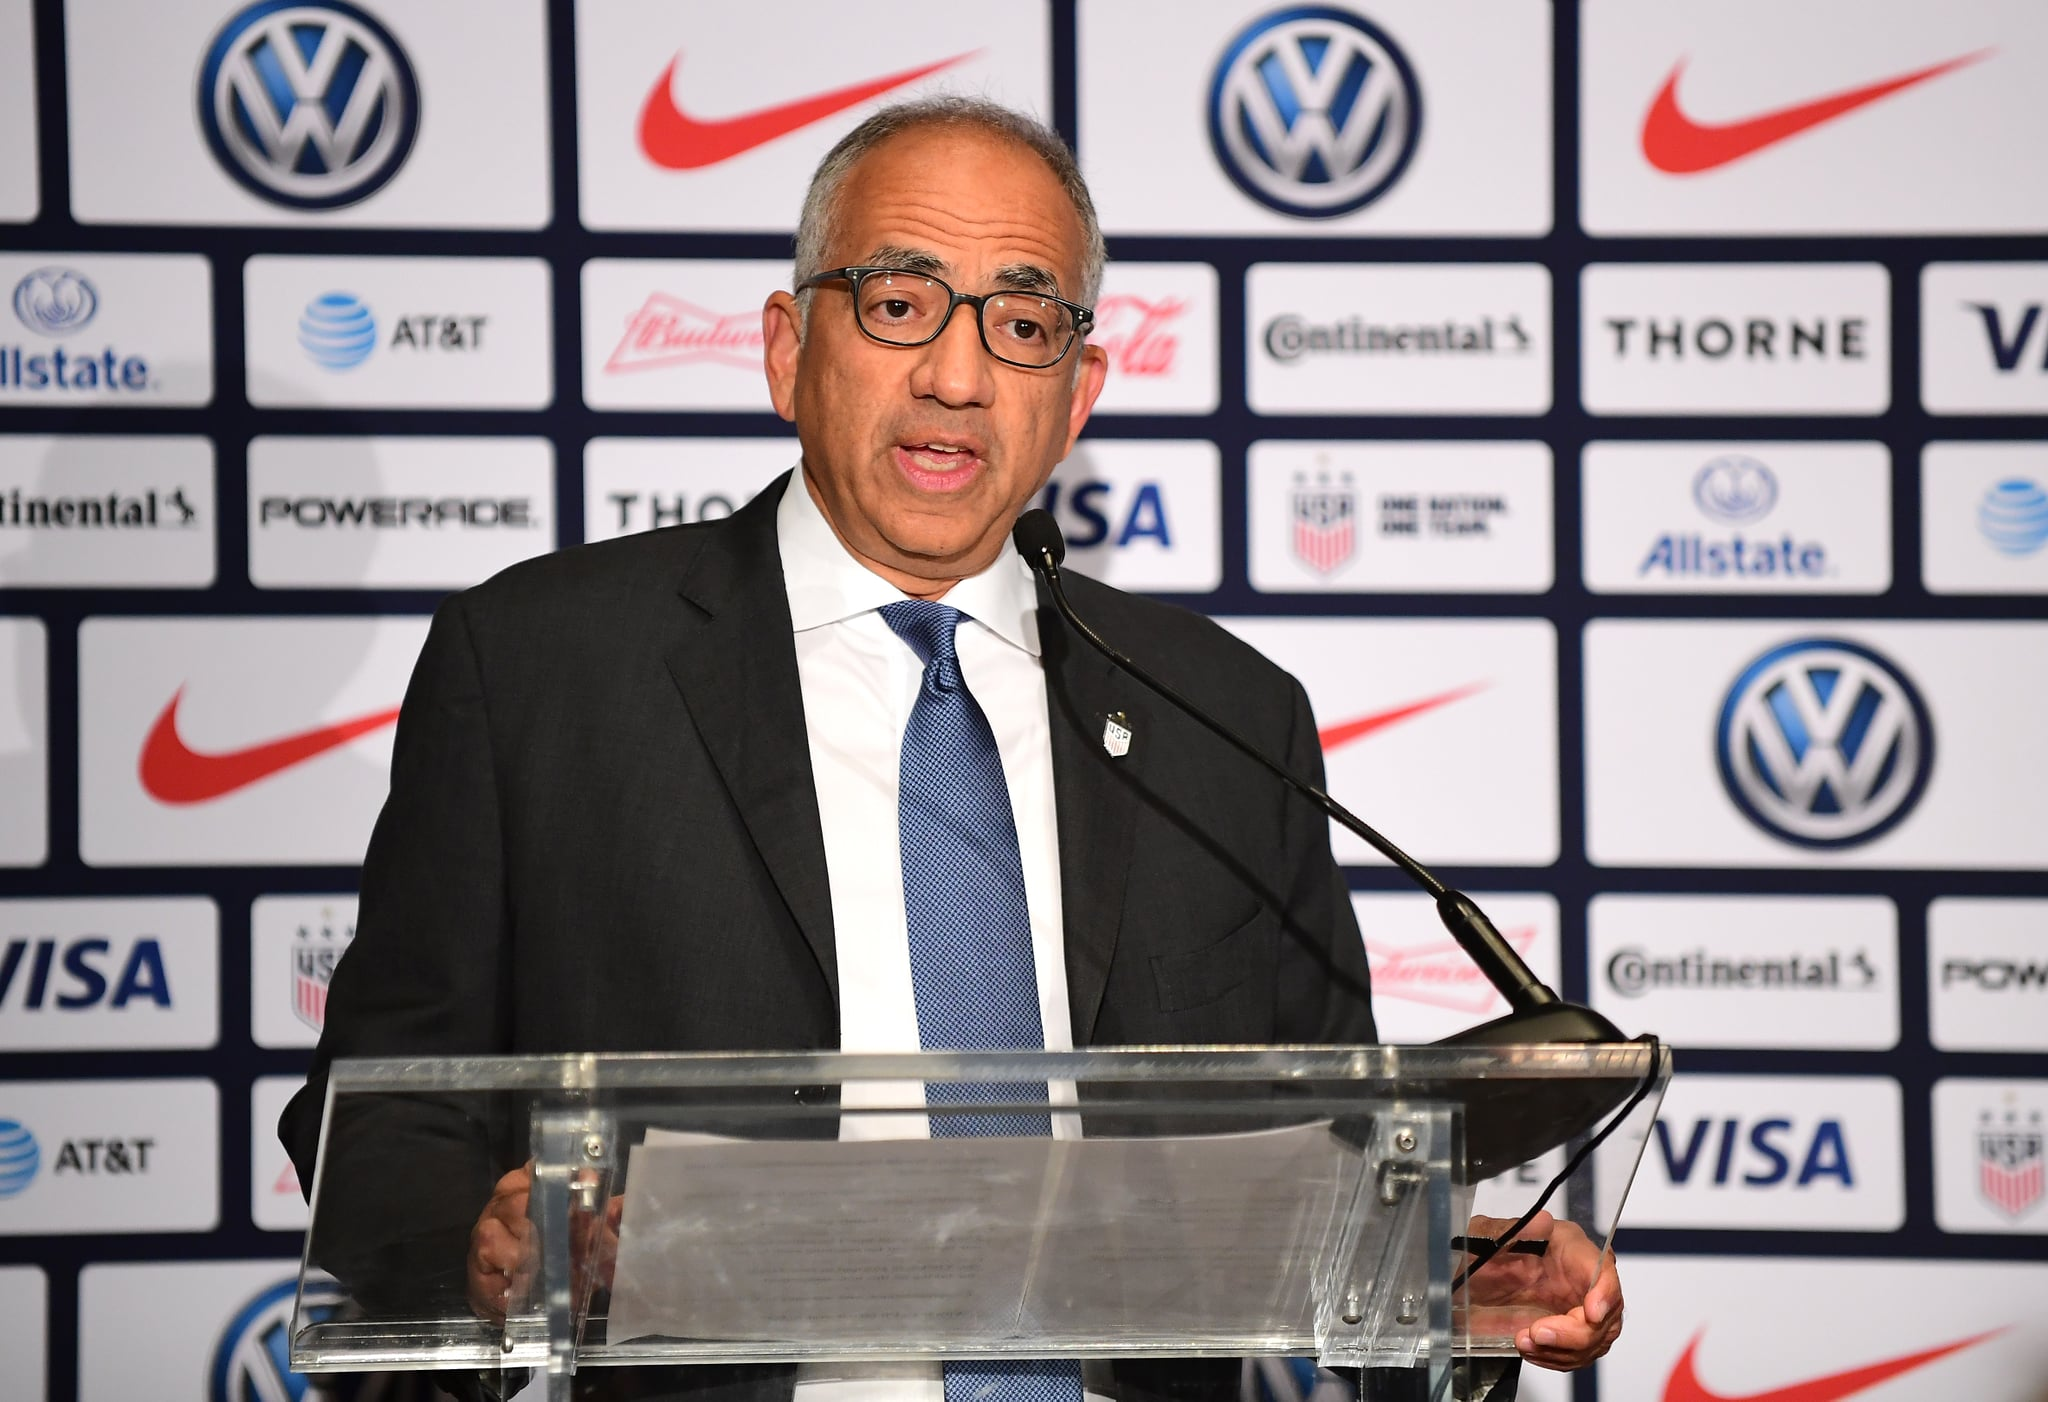 NEW YORK, NEW YORK - OCTOBER 28: Carlos Cordeiro, U.S. Soccer President,  speaks at a press conference where Vlatko Andonovski was introduced as the U.S. Women's National Team head coach, at Kimpton Hotel Eventi on October 28, 2019 in New York City. (Photo by Emilee Chinn/Getty Images)